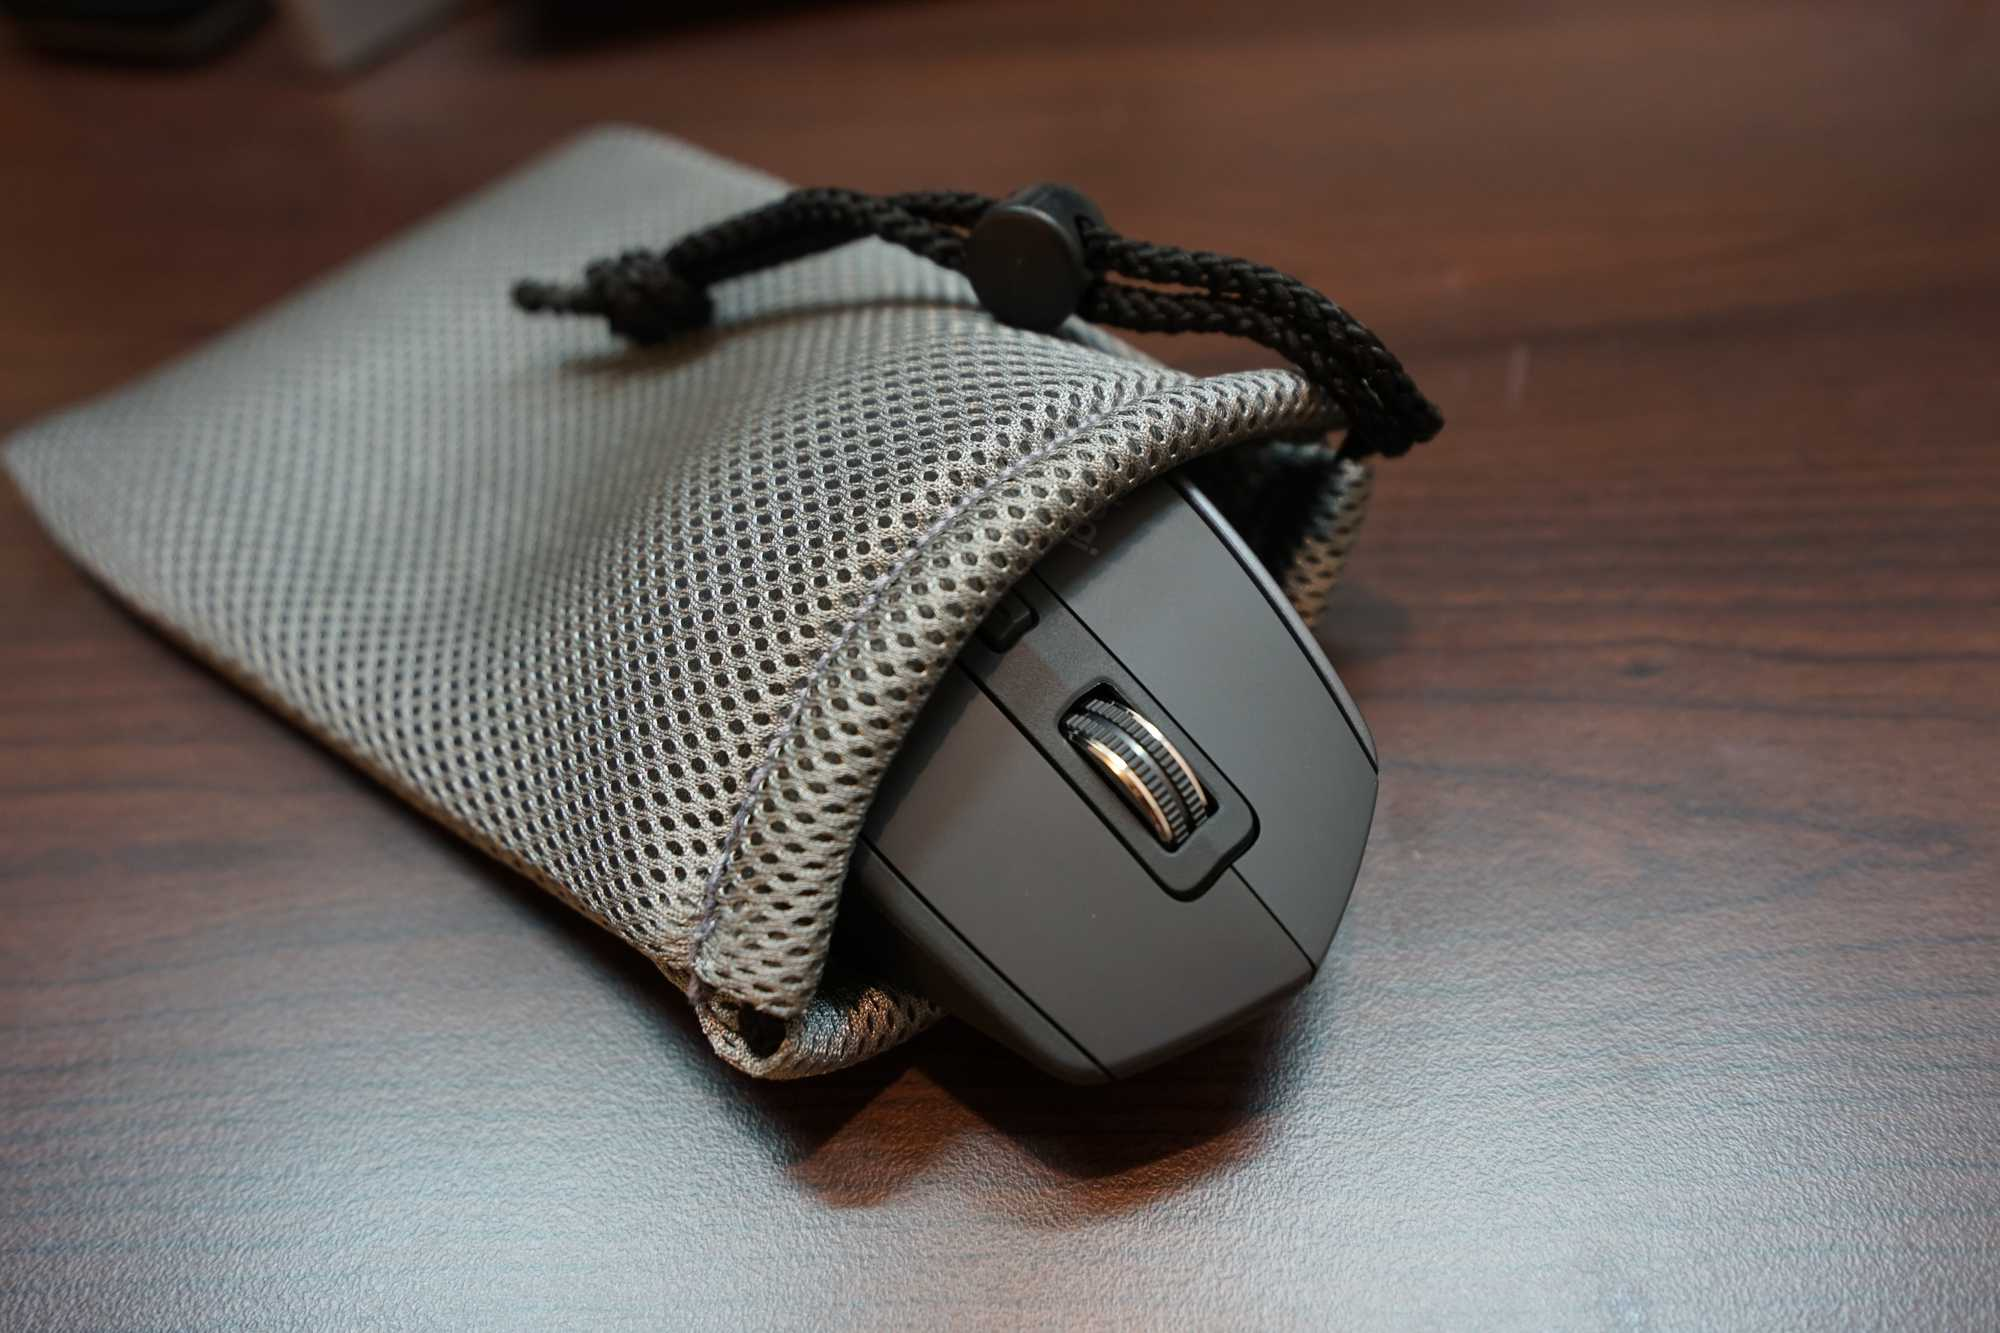 Logitech MX Master 2S in the bag